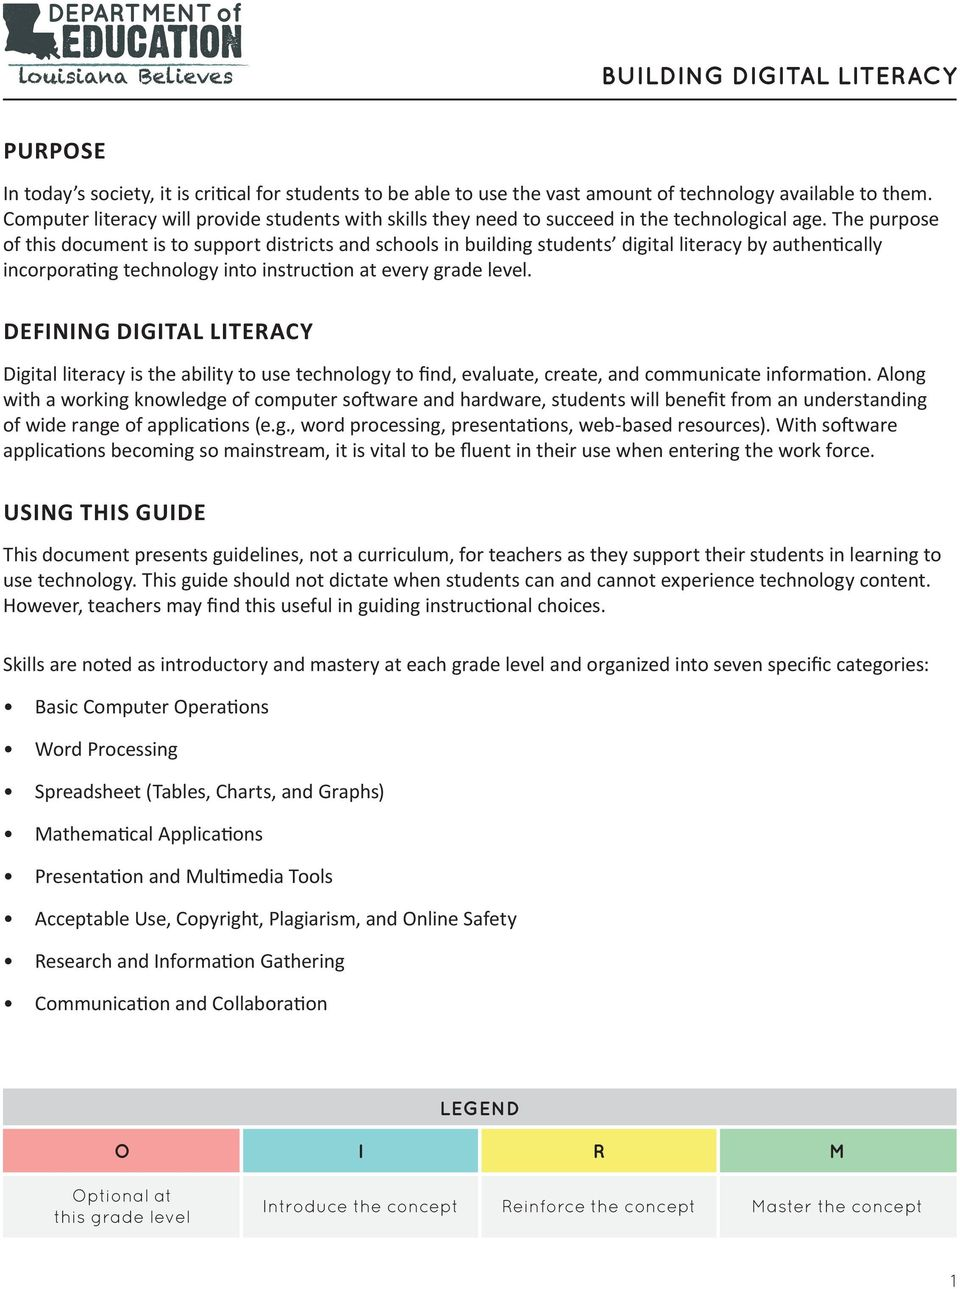 The purpose of this document is to support districts and schools in building students digital literacy by authentically incorporating technology into instruction at every grade level.